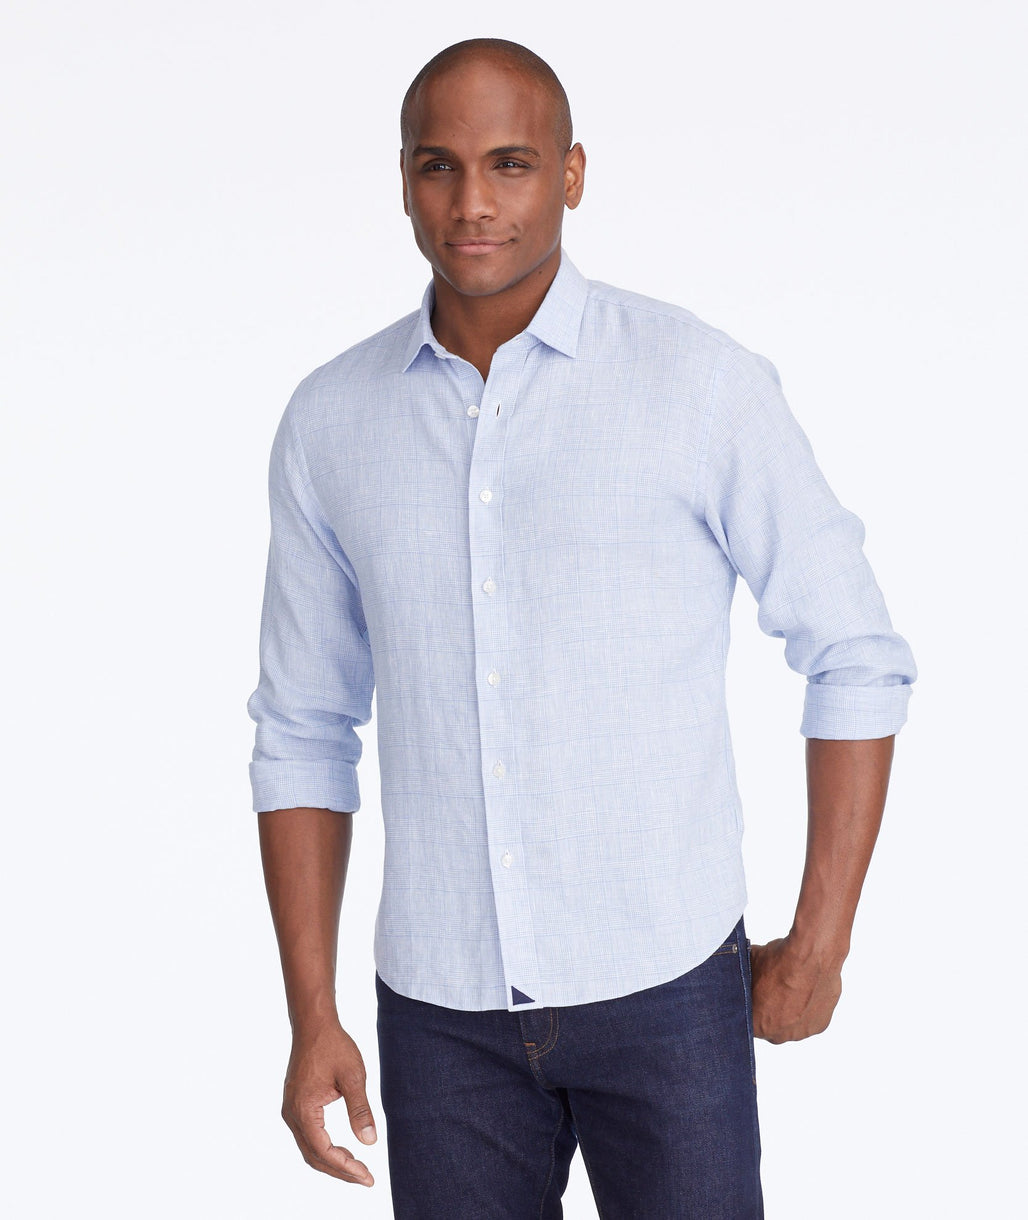 Model wearing a Blue Wrinkle-Resistant Linen Torontel Shirt